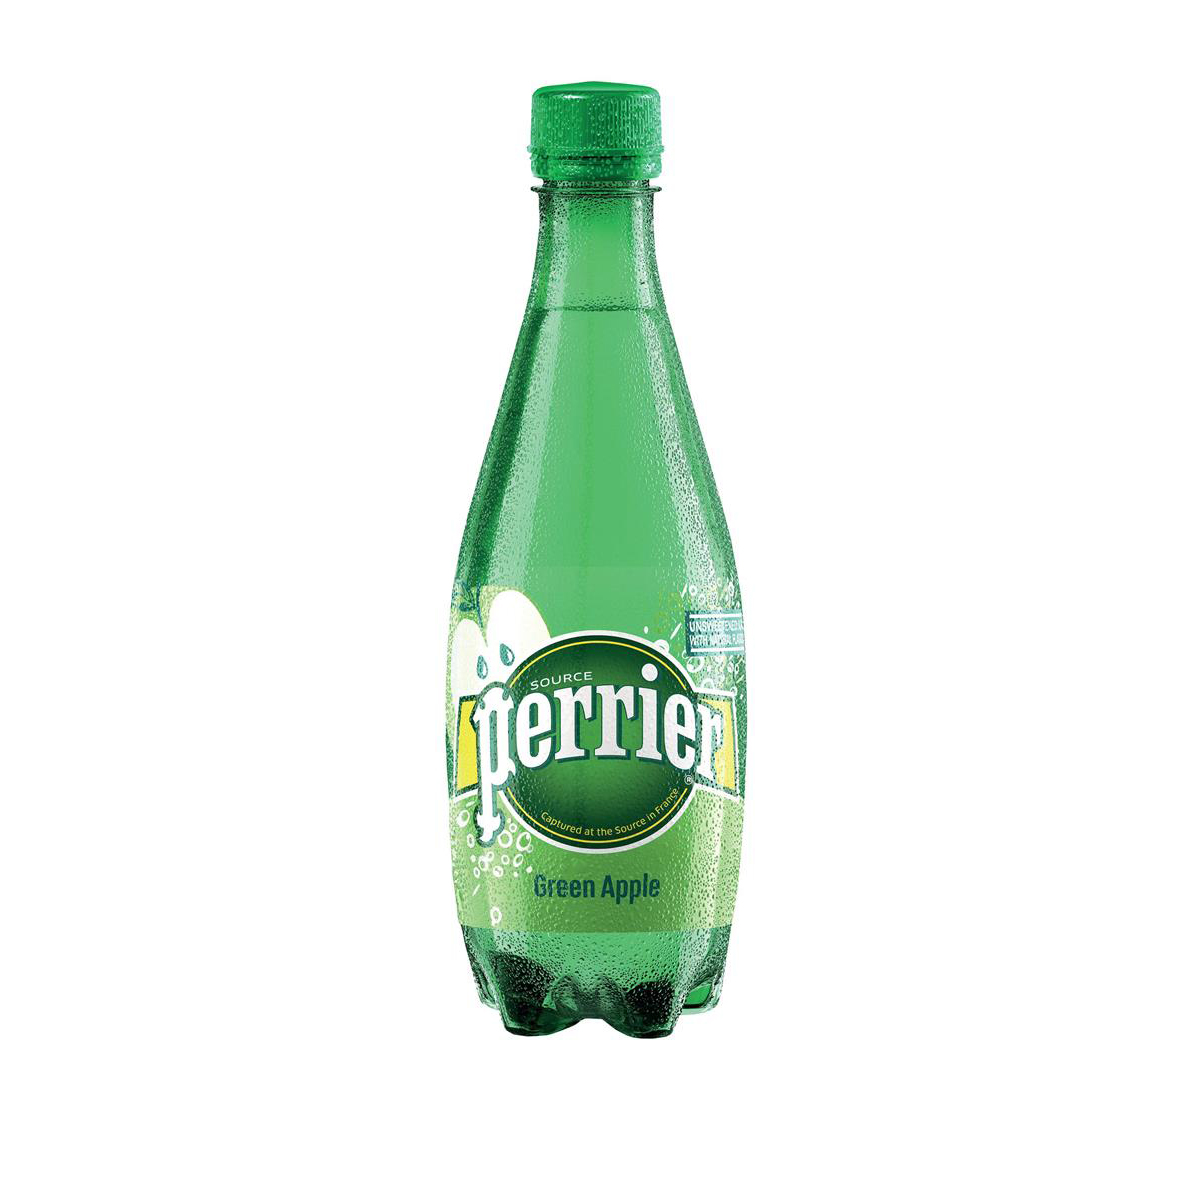 Perrier Sparkling Mineral Water Green Apple Bottle Plastic 500ml Ref 12323097 [Pack 24]